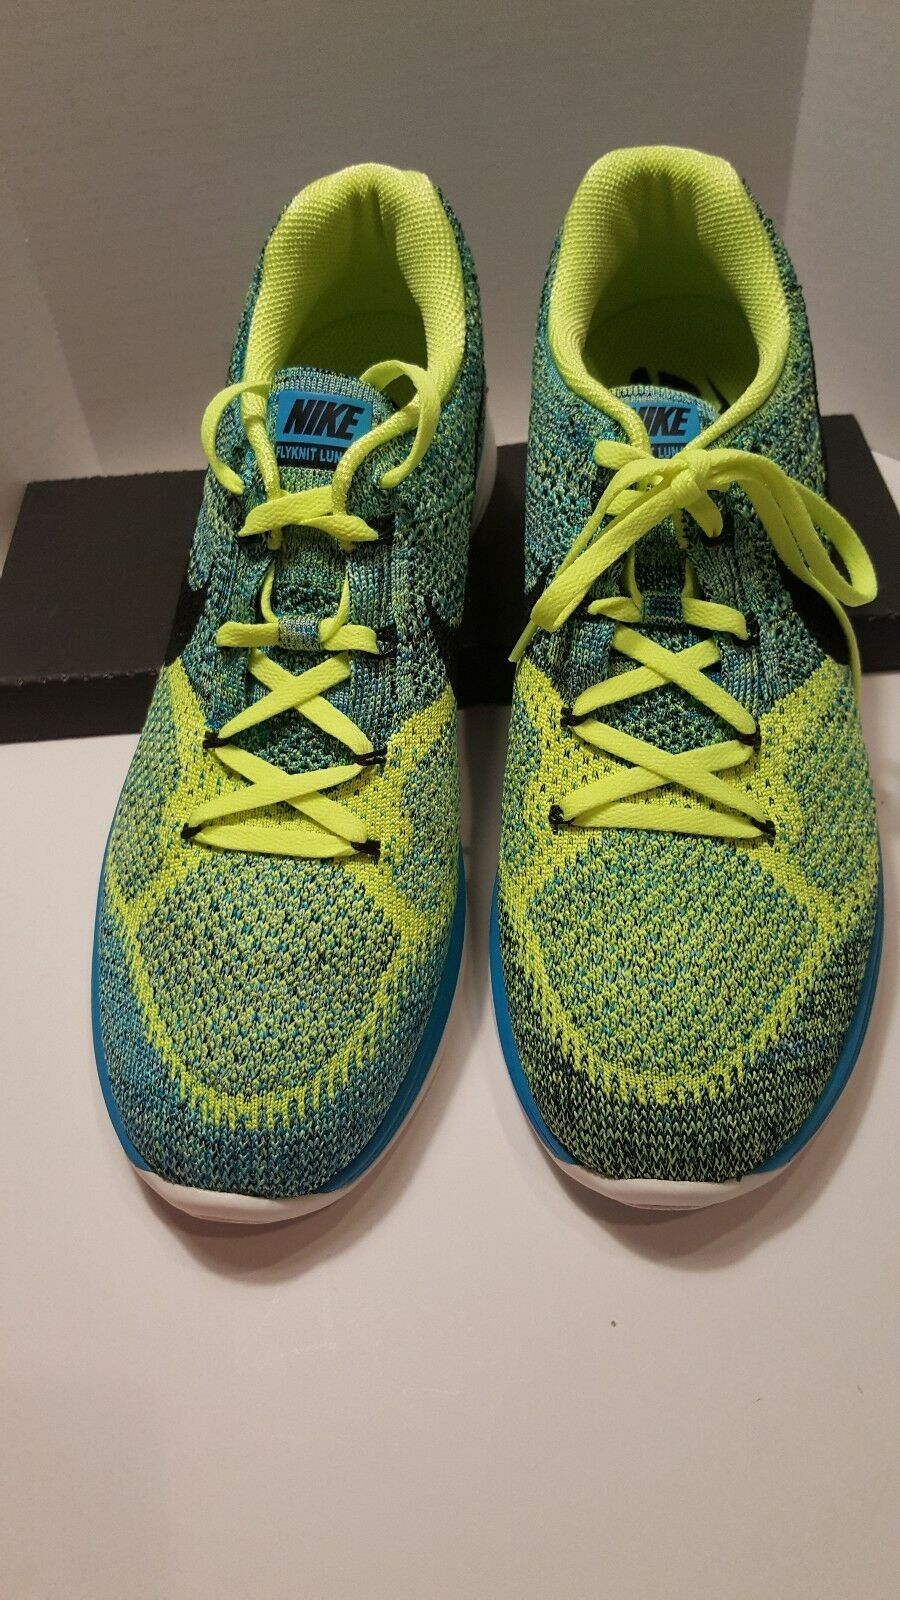 NEW Nike Flyknit Lunar 3 bluee Lagoon Black Volt 698181 403 Mens shoes  Size 10.5